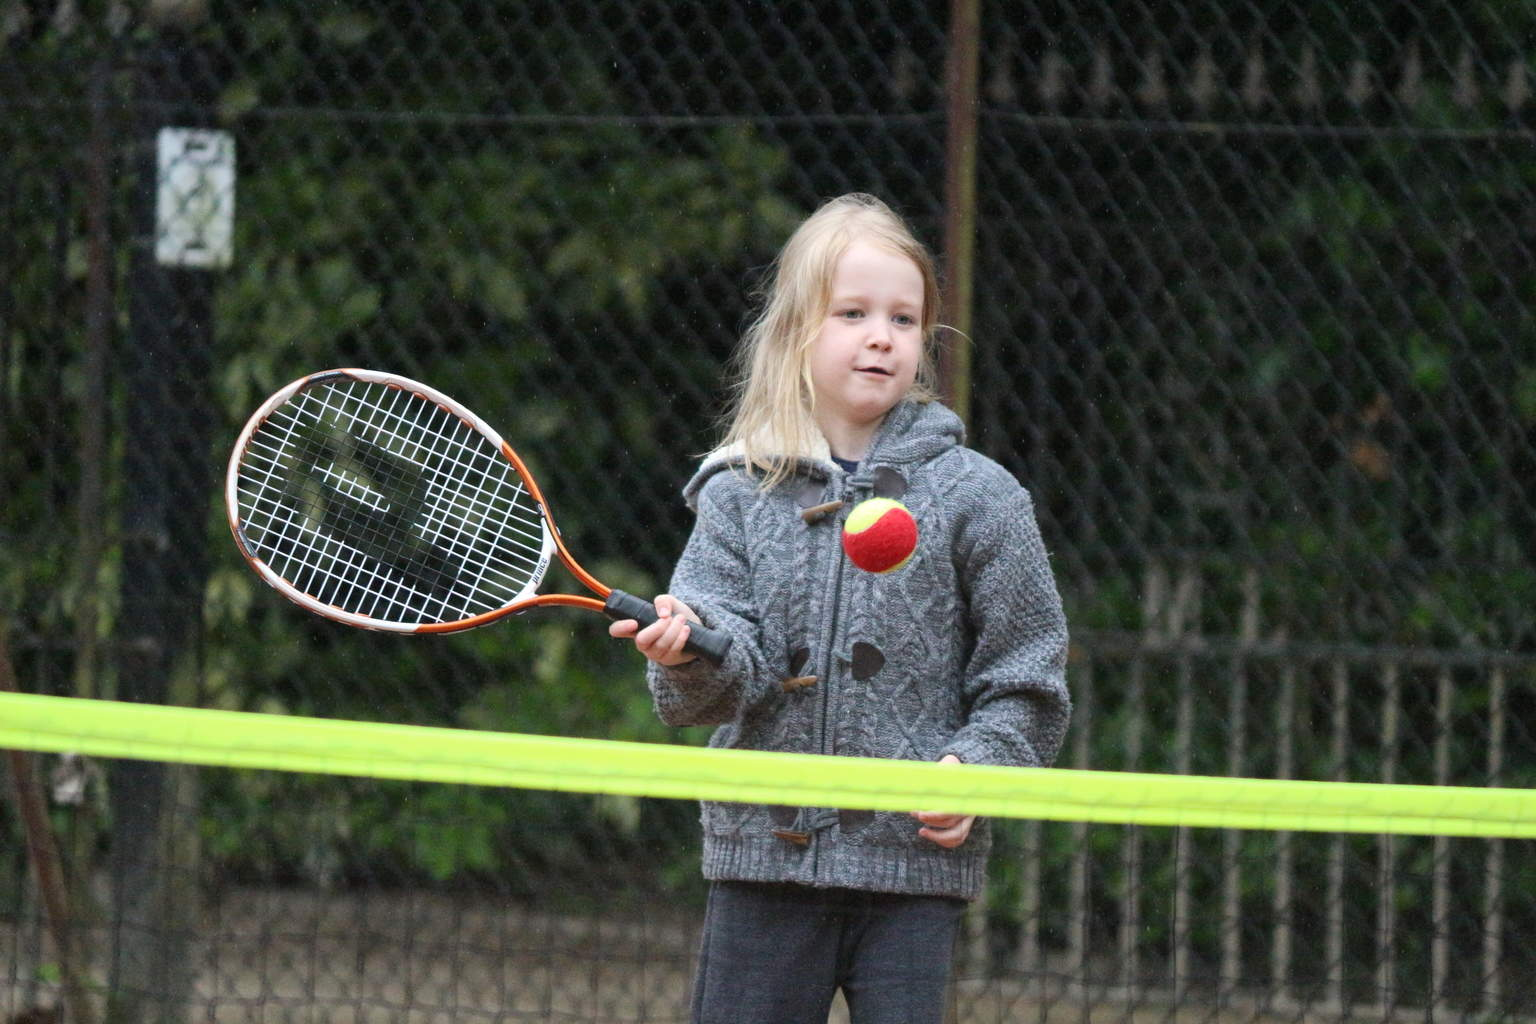 Learning a new skill with free Tennis Lessons